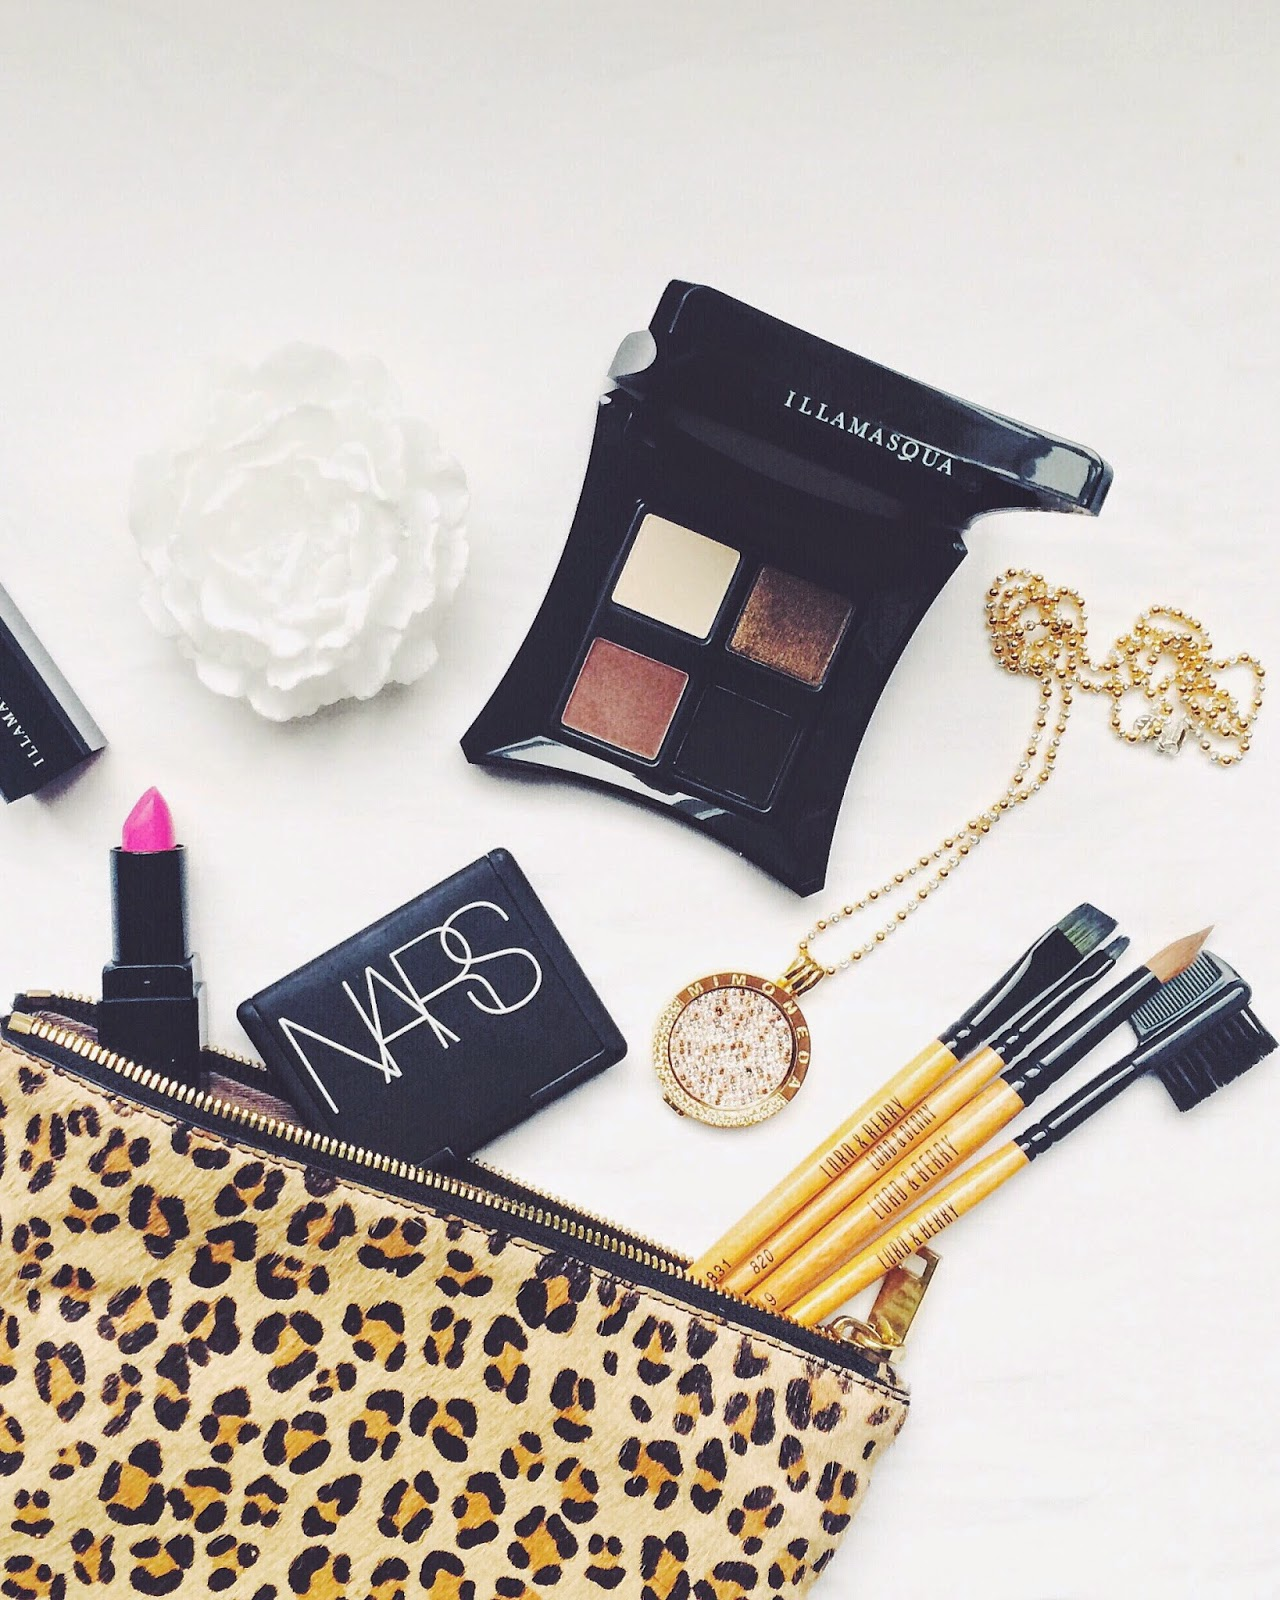 asos beauty, nars blush, illamasqua, illamasqua eye shadow, pink lipstick